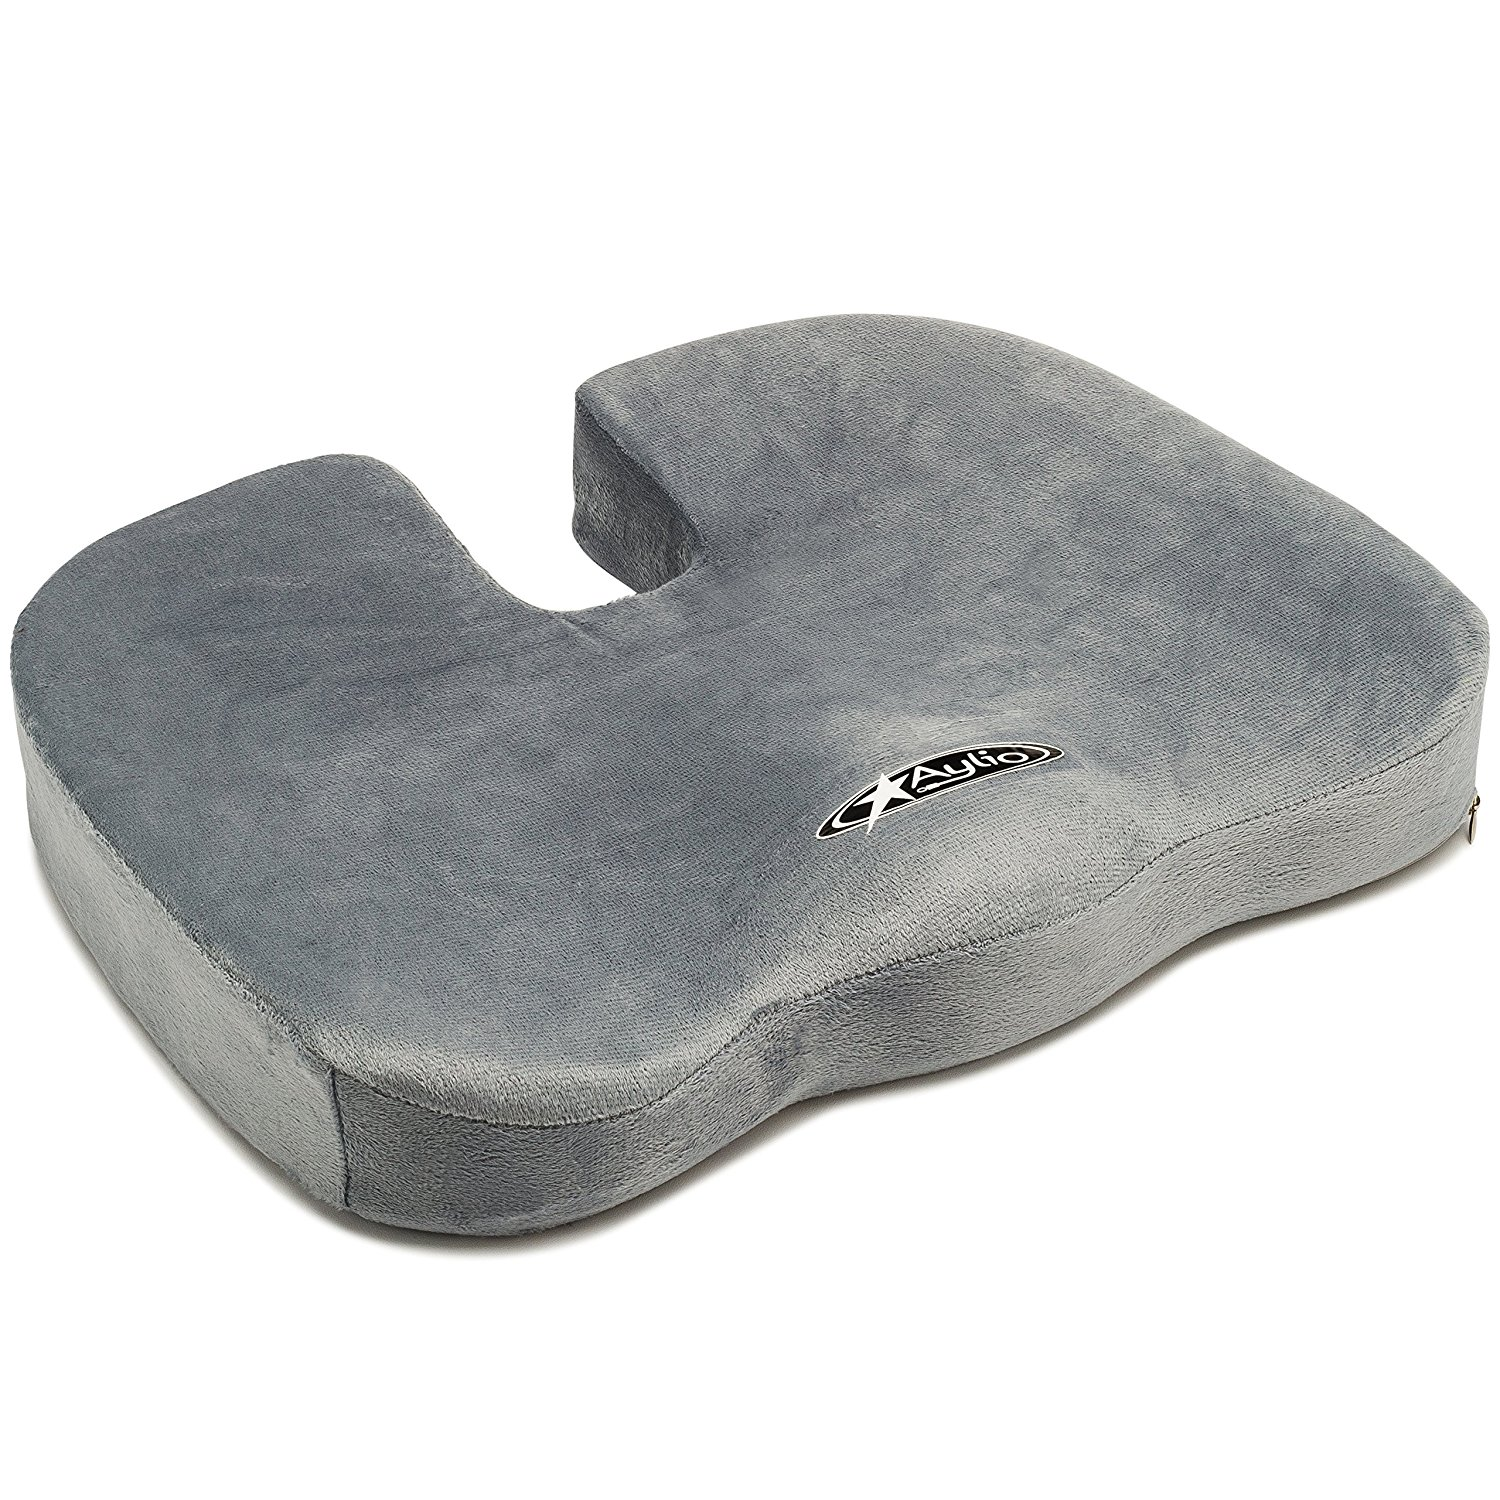 Aylio Coccyx Cushion for Back Pain Relief